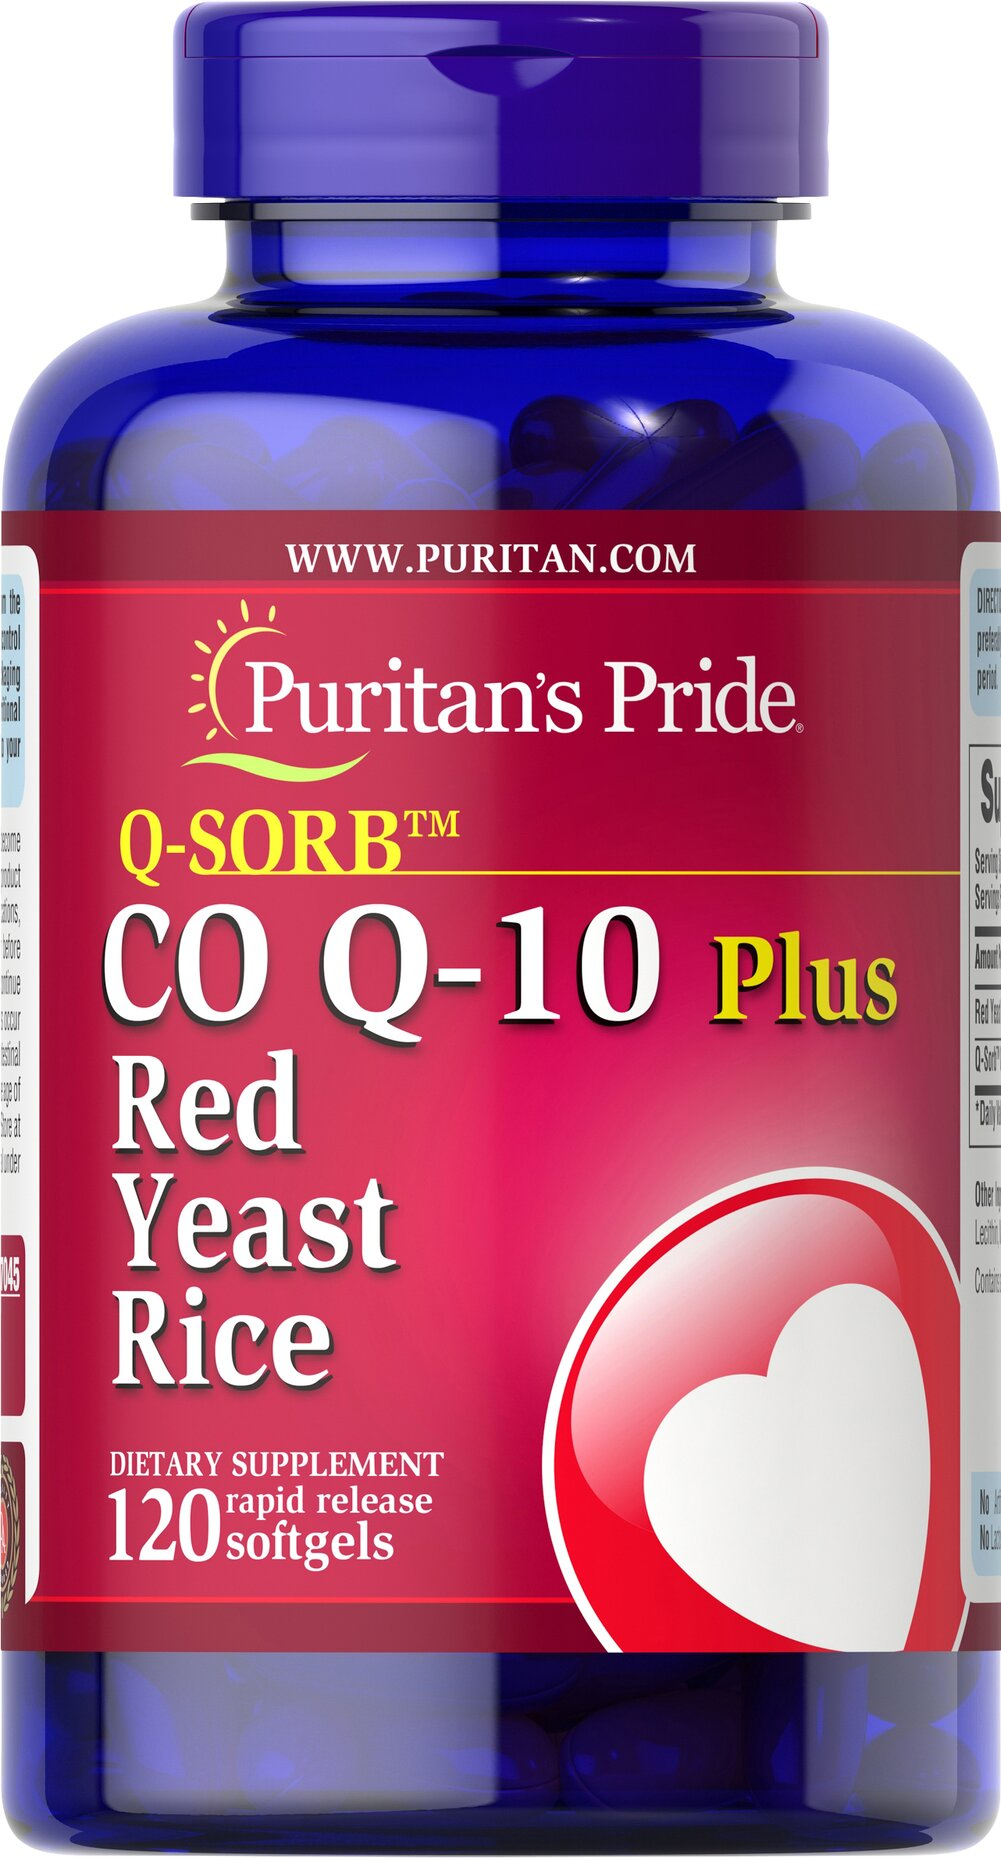 Co Q-10 60 mg plus Red Yeast Rice 600 mg <p>A powerful antioxidant combined with an ingredient whose traditional goodness has been valued for centuries can only mean one thing… <strong>Co Q-10 Plus Red Yeast Rice.</strong></p><p>Red Yeast Rice has been a part of the traditional Chinese diet for centuries, and Coenzyme Q-10 promotes energy production and is an important contributor to antioxidant and heart health.** Only one softgel a day brings you these many benefi